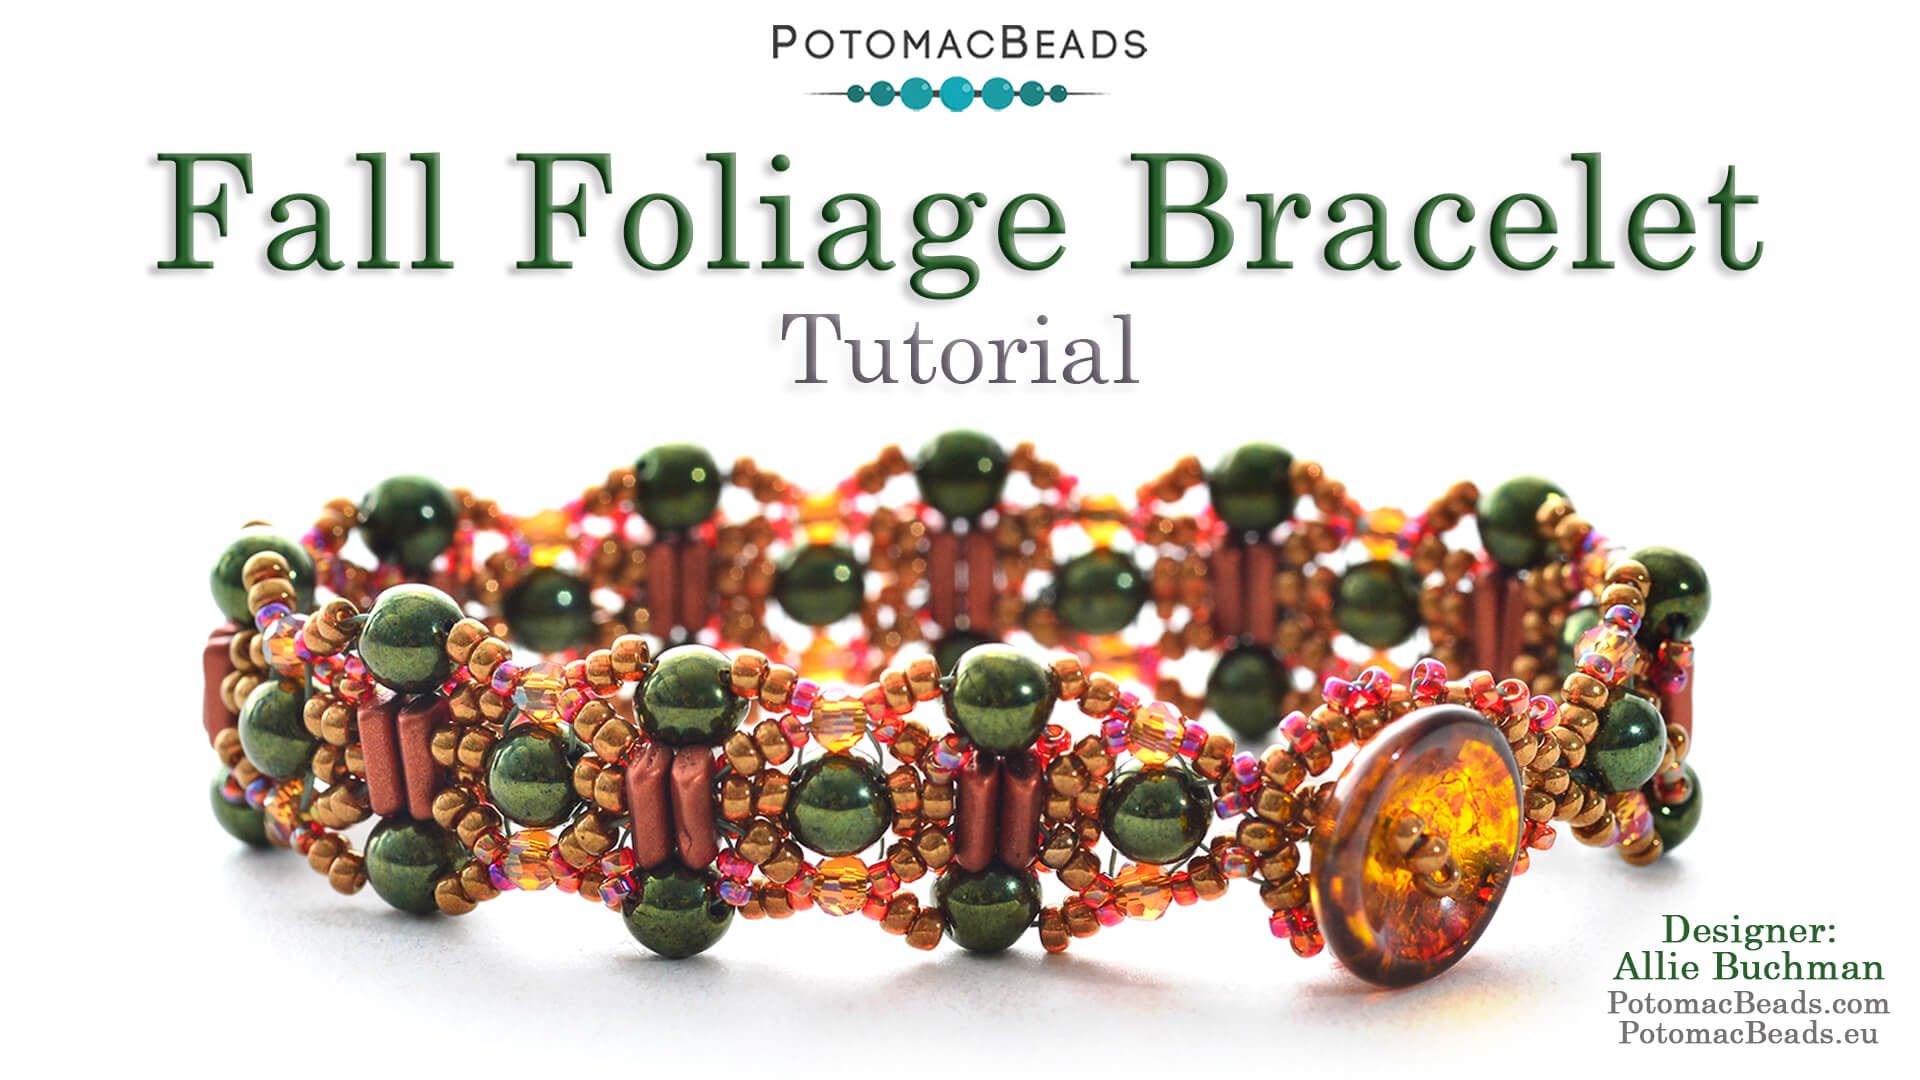 How to Bead / Videos Sorted by Beads / Par Puca® Bead Videos / Fall Foliage Bracelet Tutorial